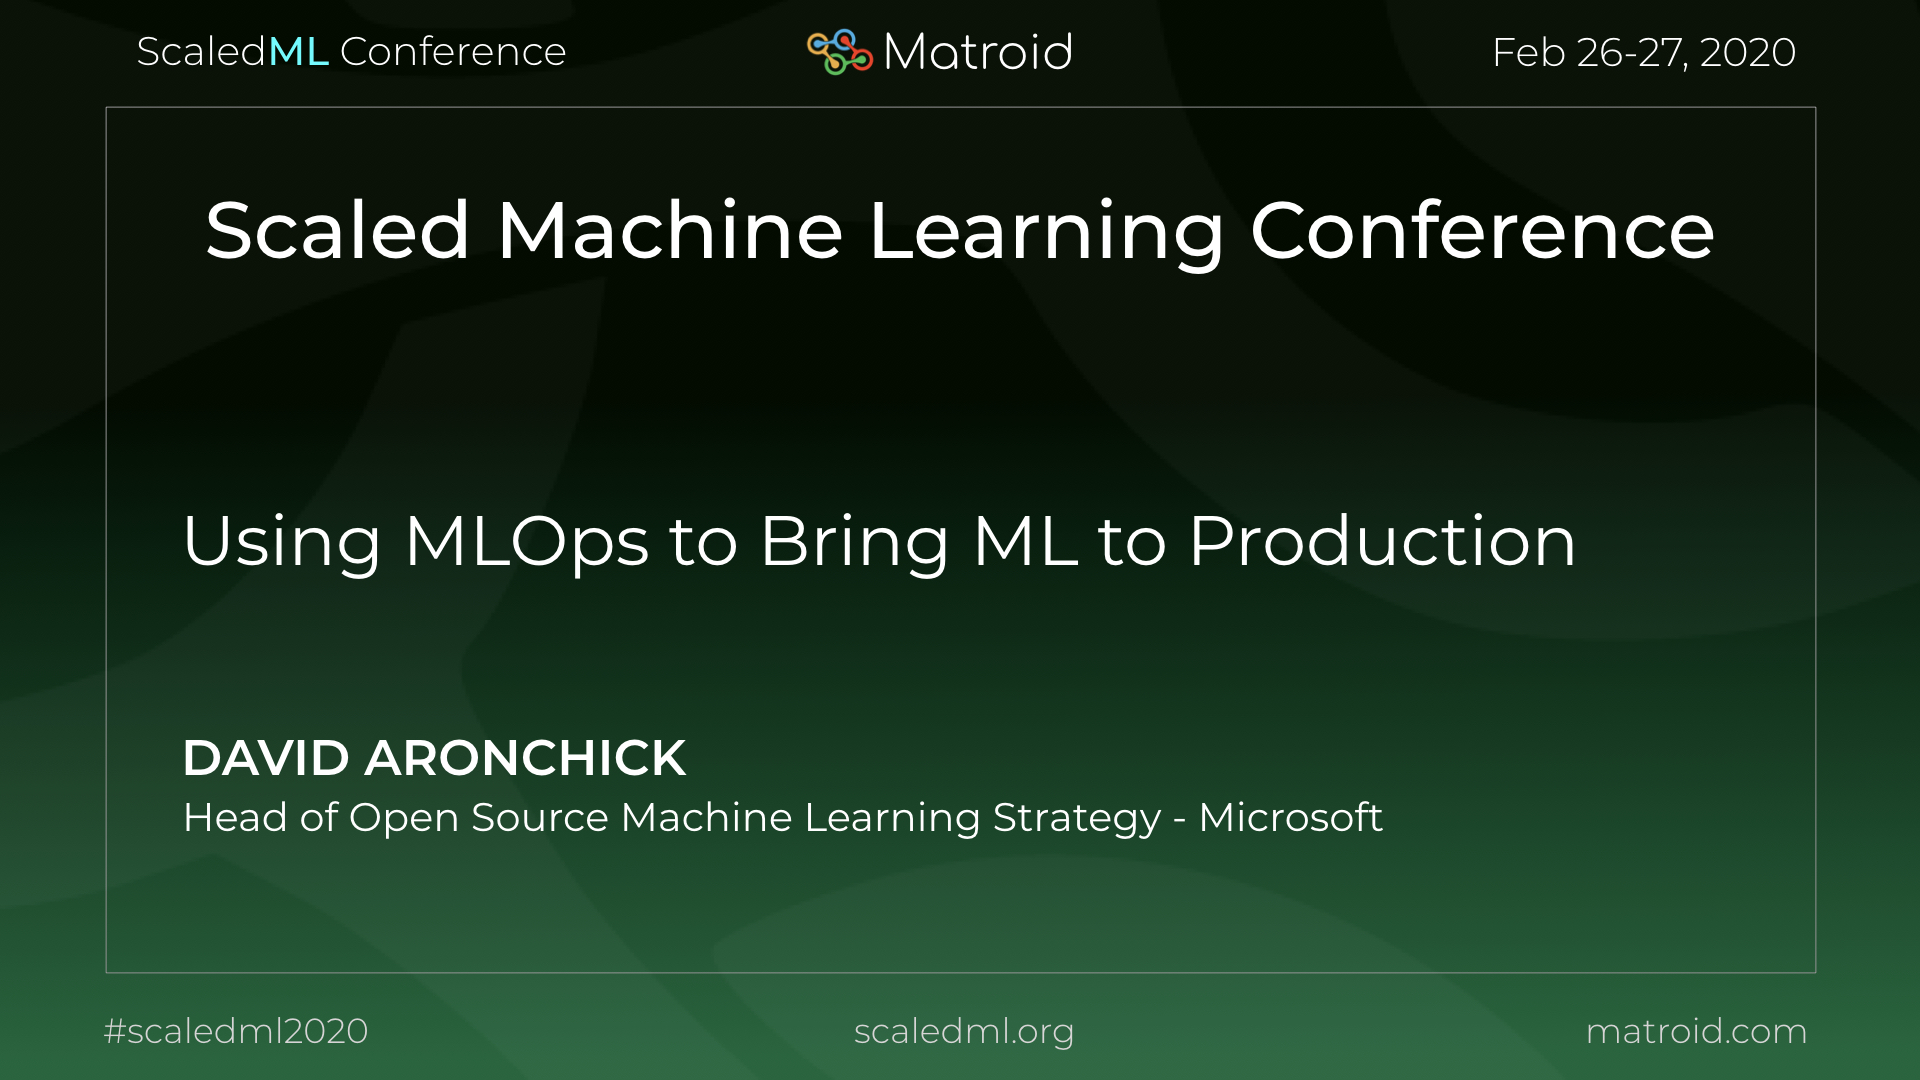 David Aronchick Microsoft ScaledML Conference TPU CPU GPU Computer Vision AI Artificial Intelligence Machine Learning